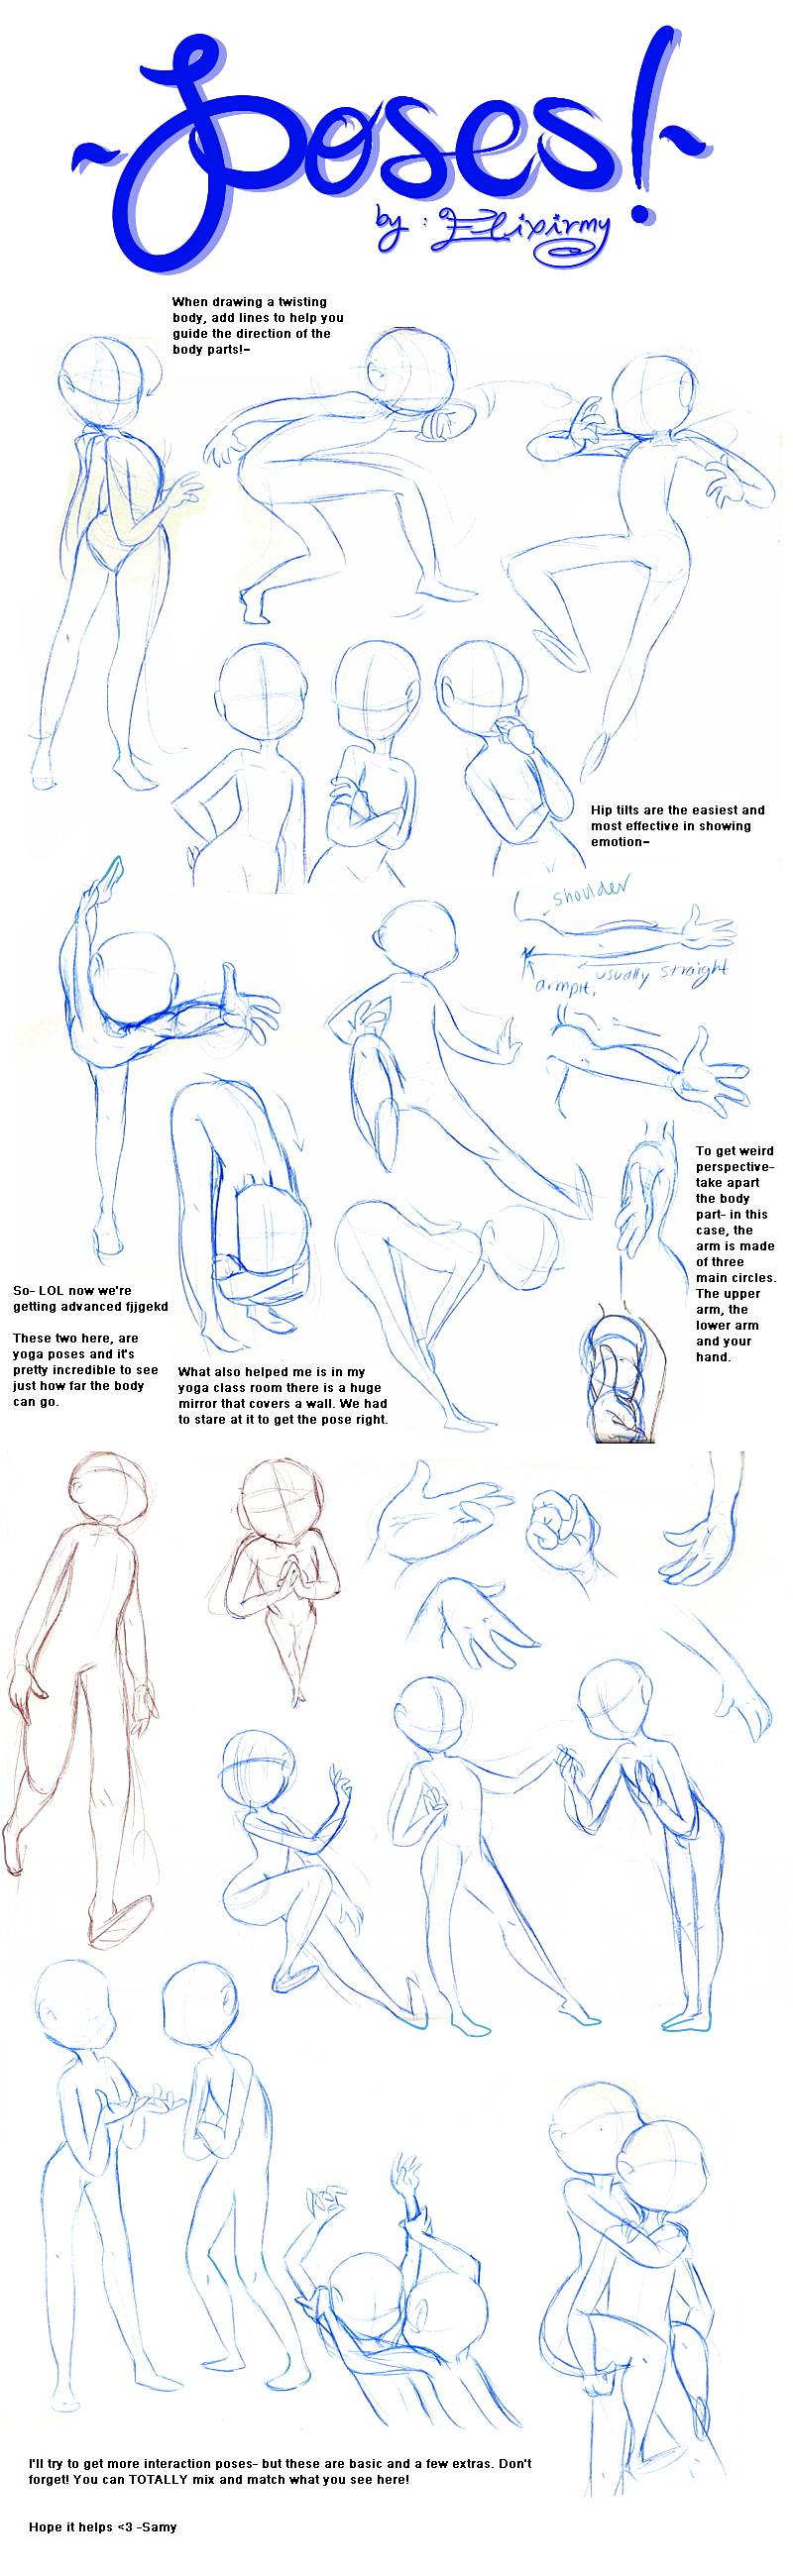 Poses 2 By Elixirmy On Deviantart Drawings Drawing People Character Design References